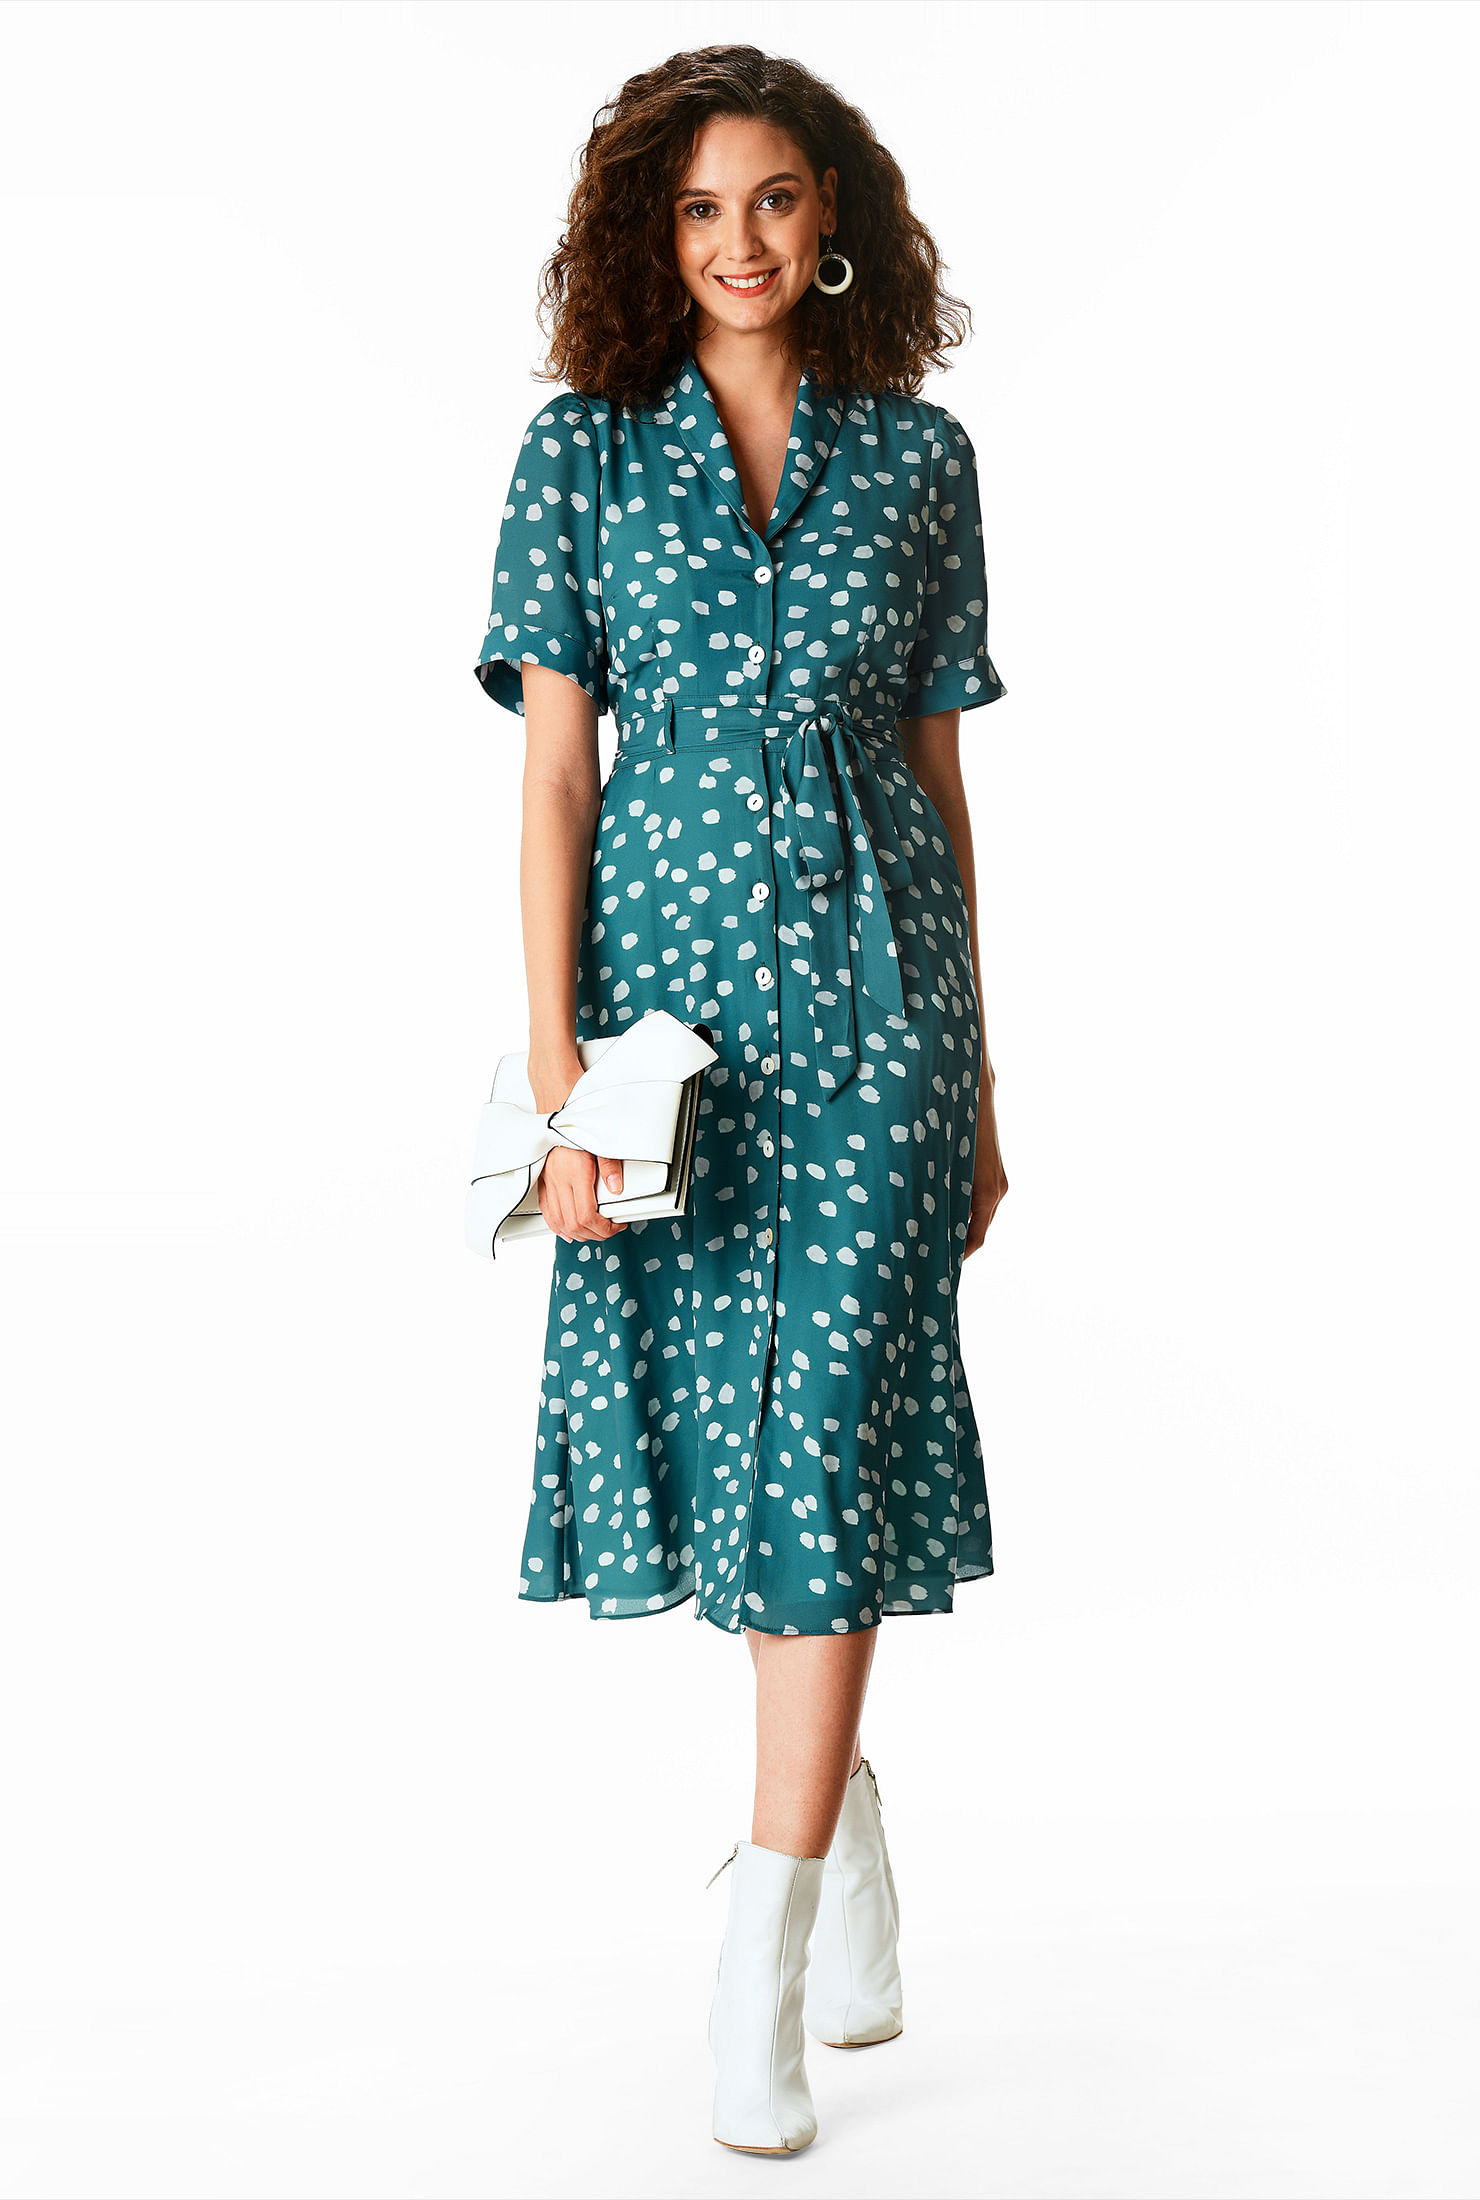 500 Vintage Style Dresses for Sale | Vintage Inspired Dresses Graphic dot print crepe tie waist shirtdress $79.95 AT vintagedancer.com